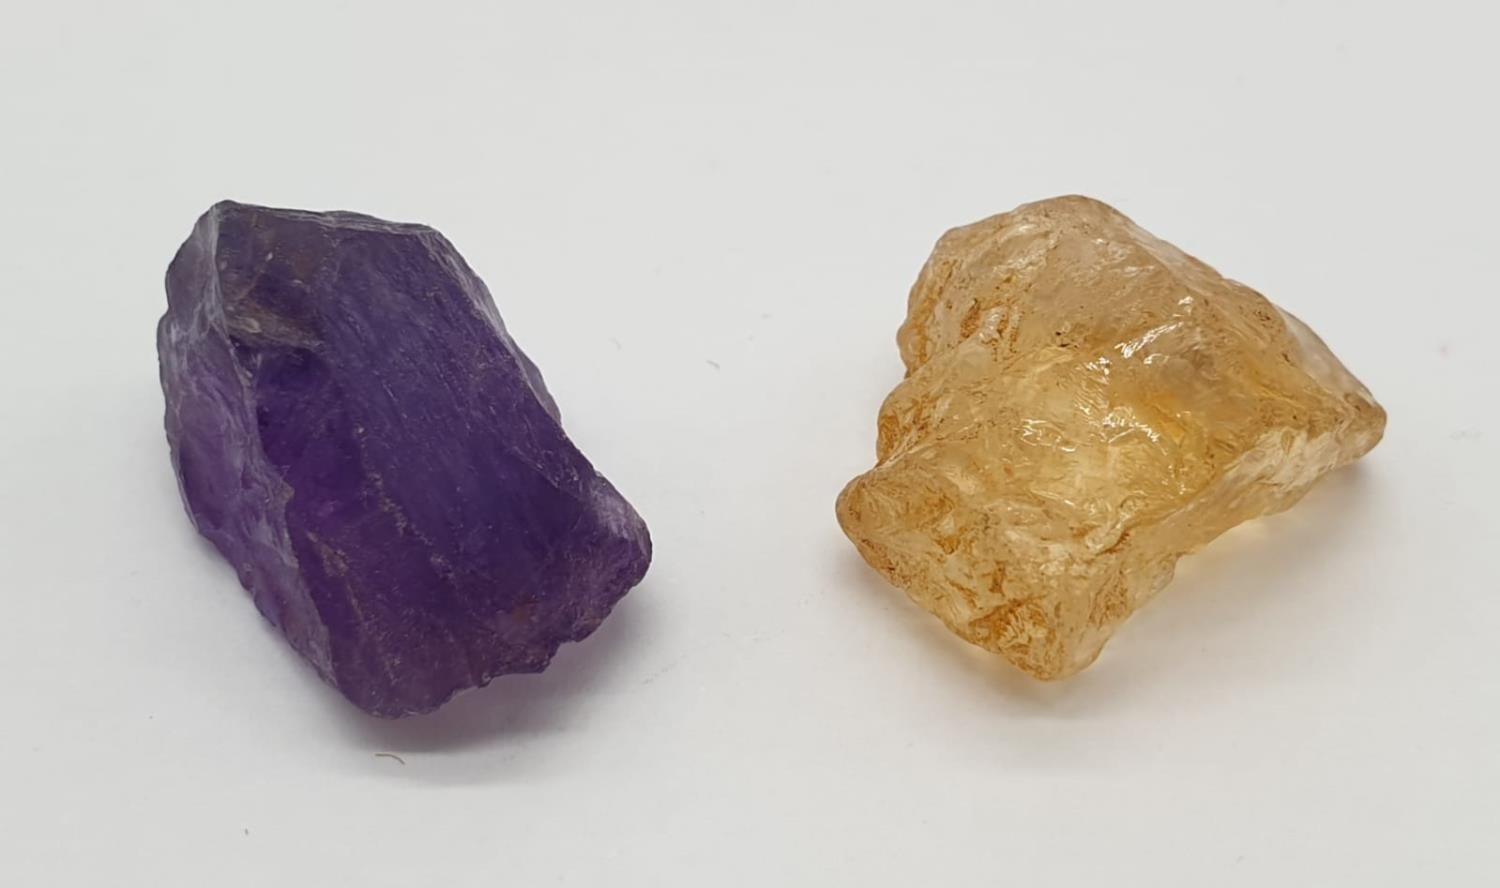 Total 30cts Amethyst and yellow topaz 2 large rough gemstones - Image 2 of 3